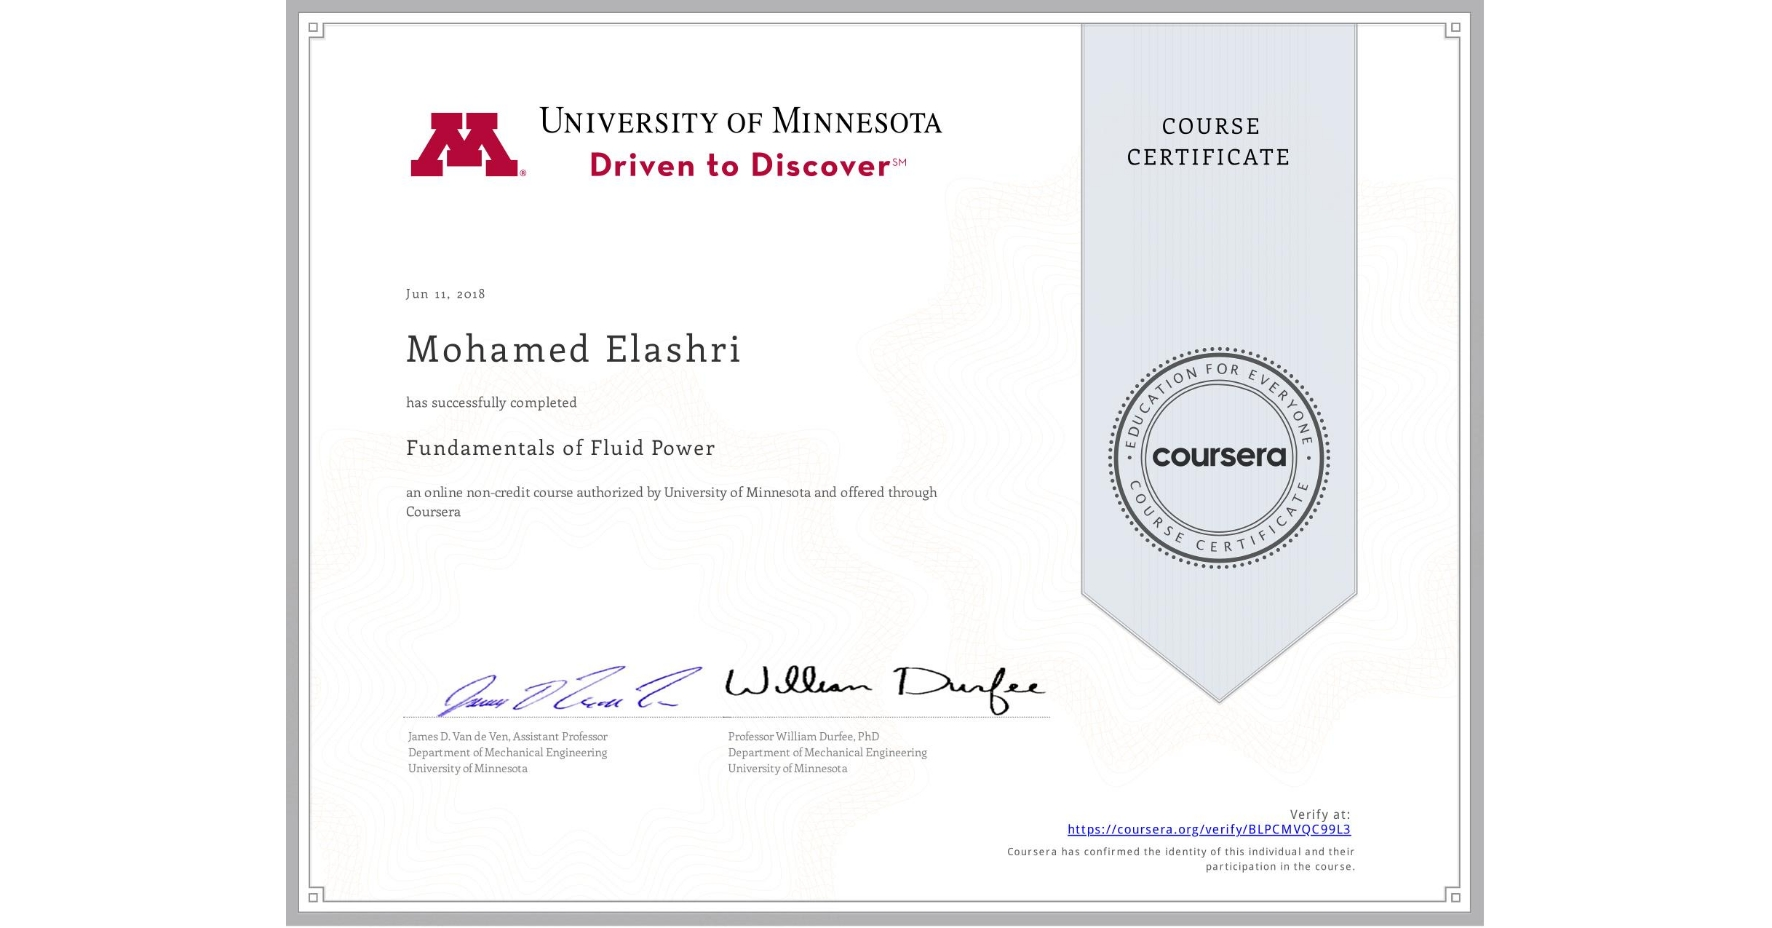 View certificate for Mohamed Elashri, Fundamentals of Fluid Power, an online non-credit course authorized by University of Minnesota and offered through Coursera